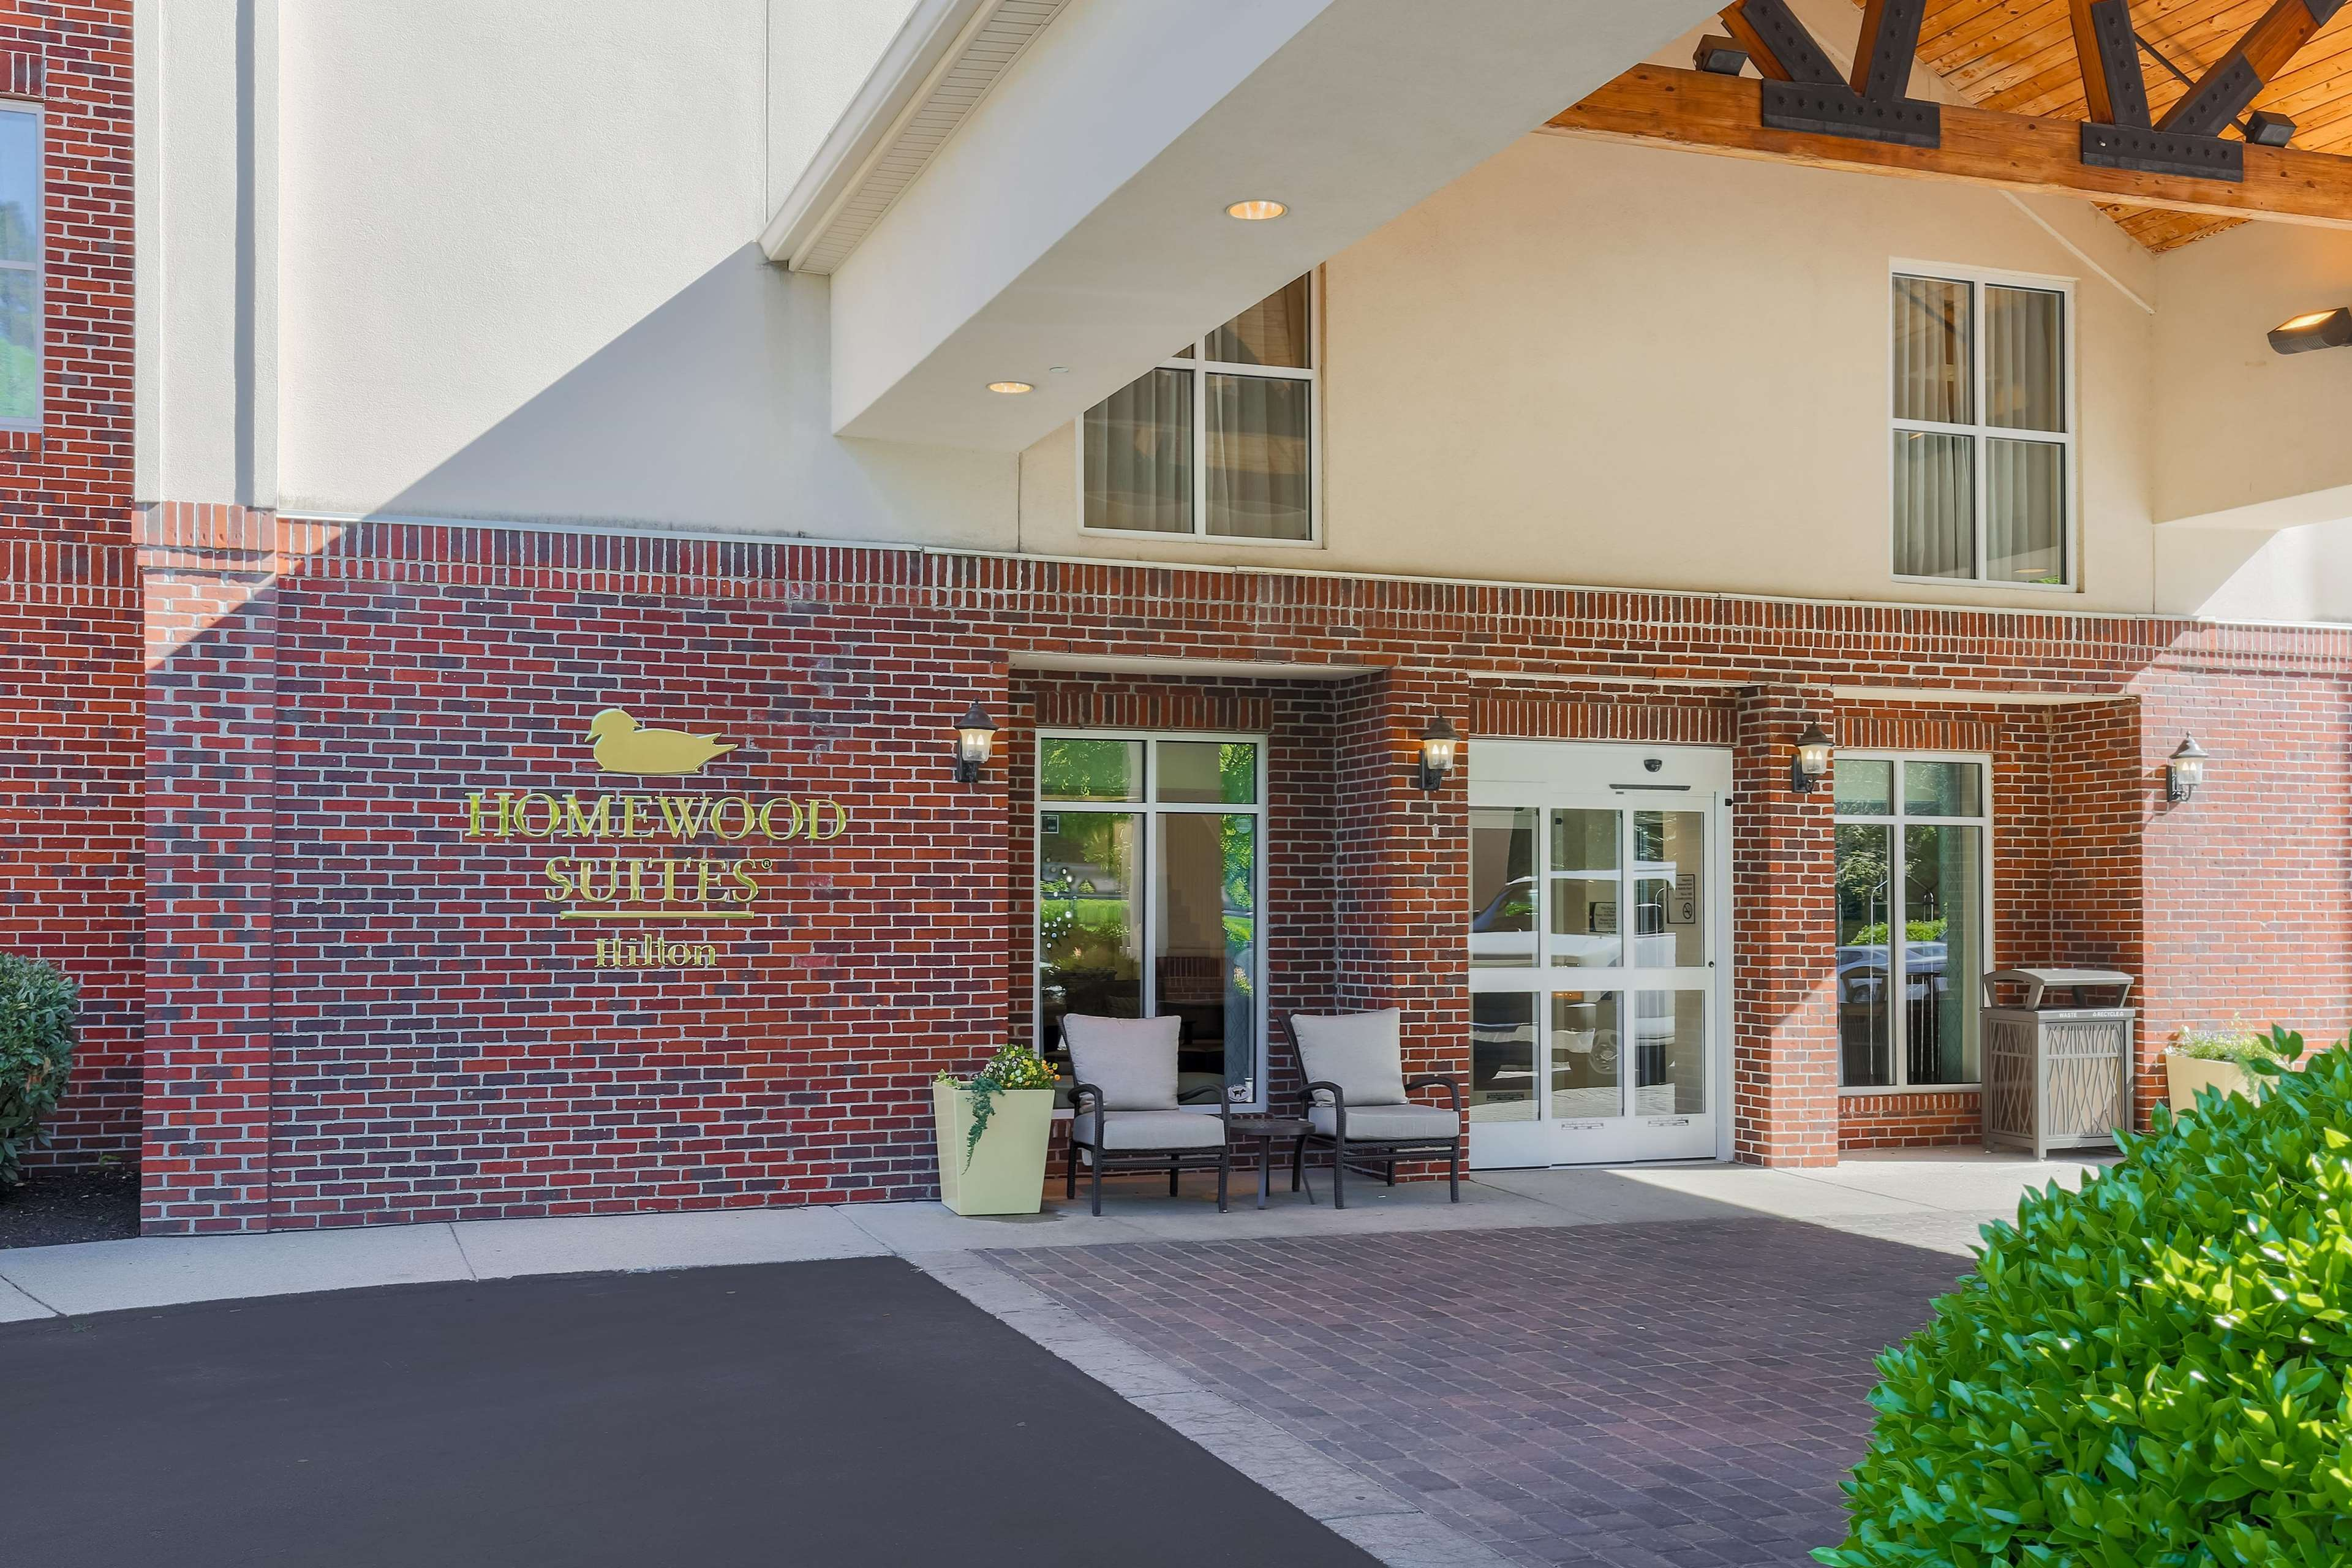 Homewood Suites By Hilton Nashville Airport In Nashville Tn 37214